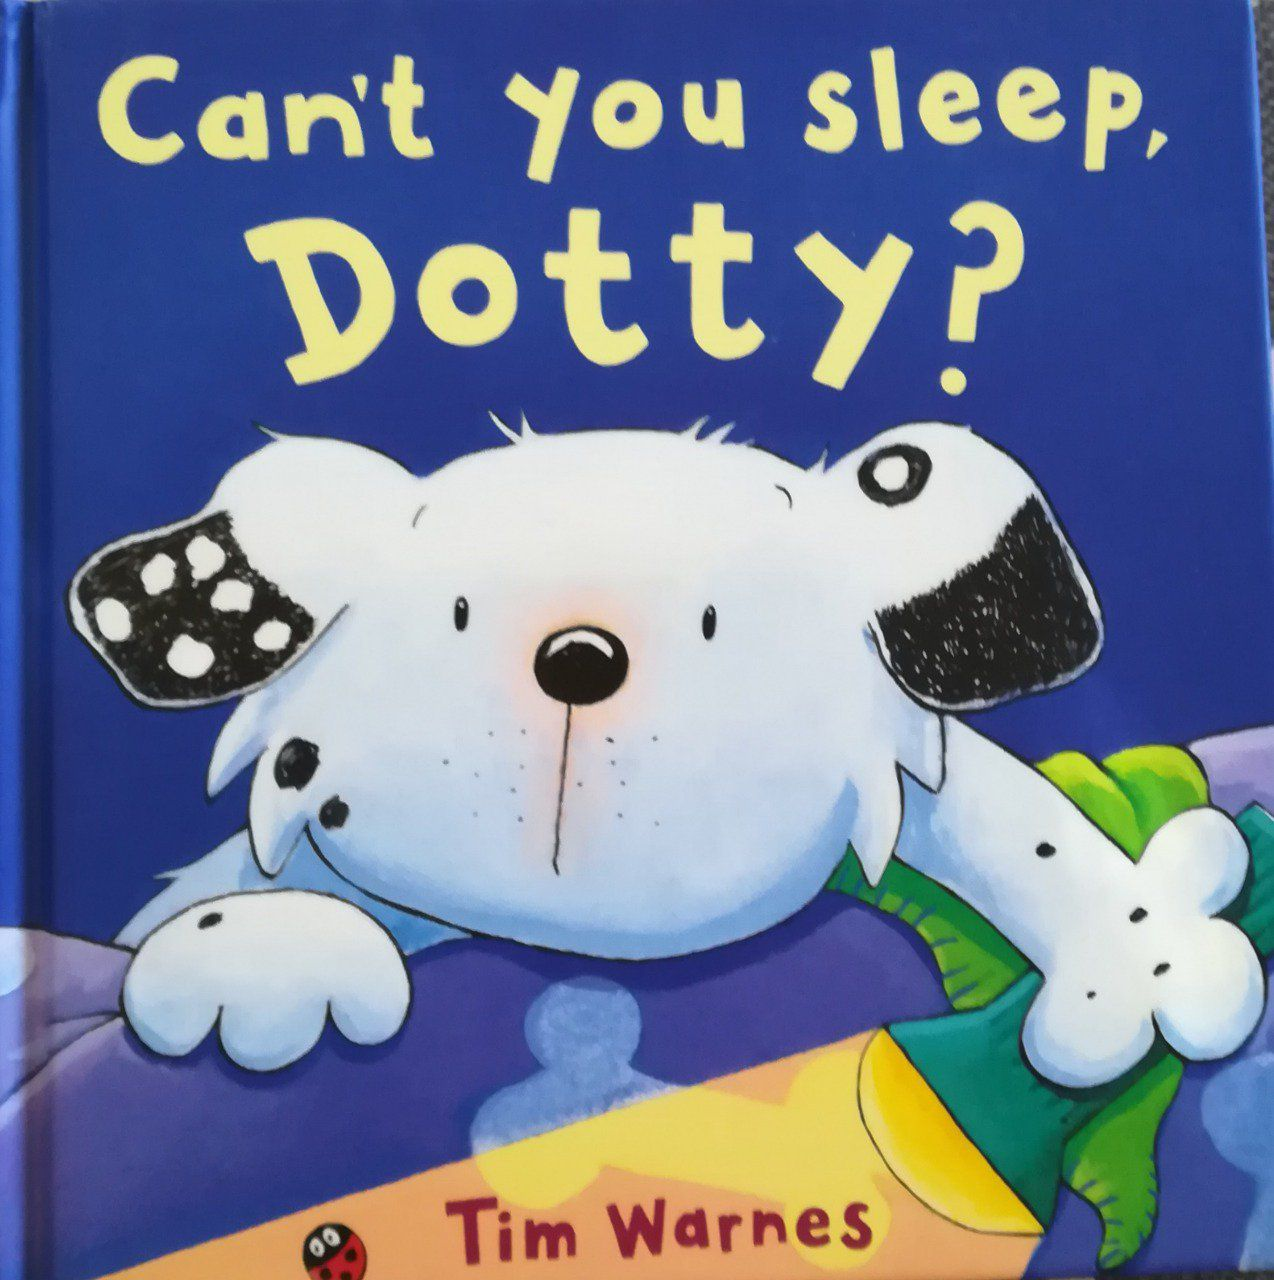 Can't you sleep Dotty ?